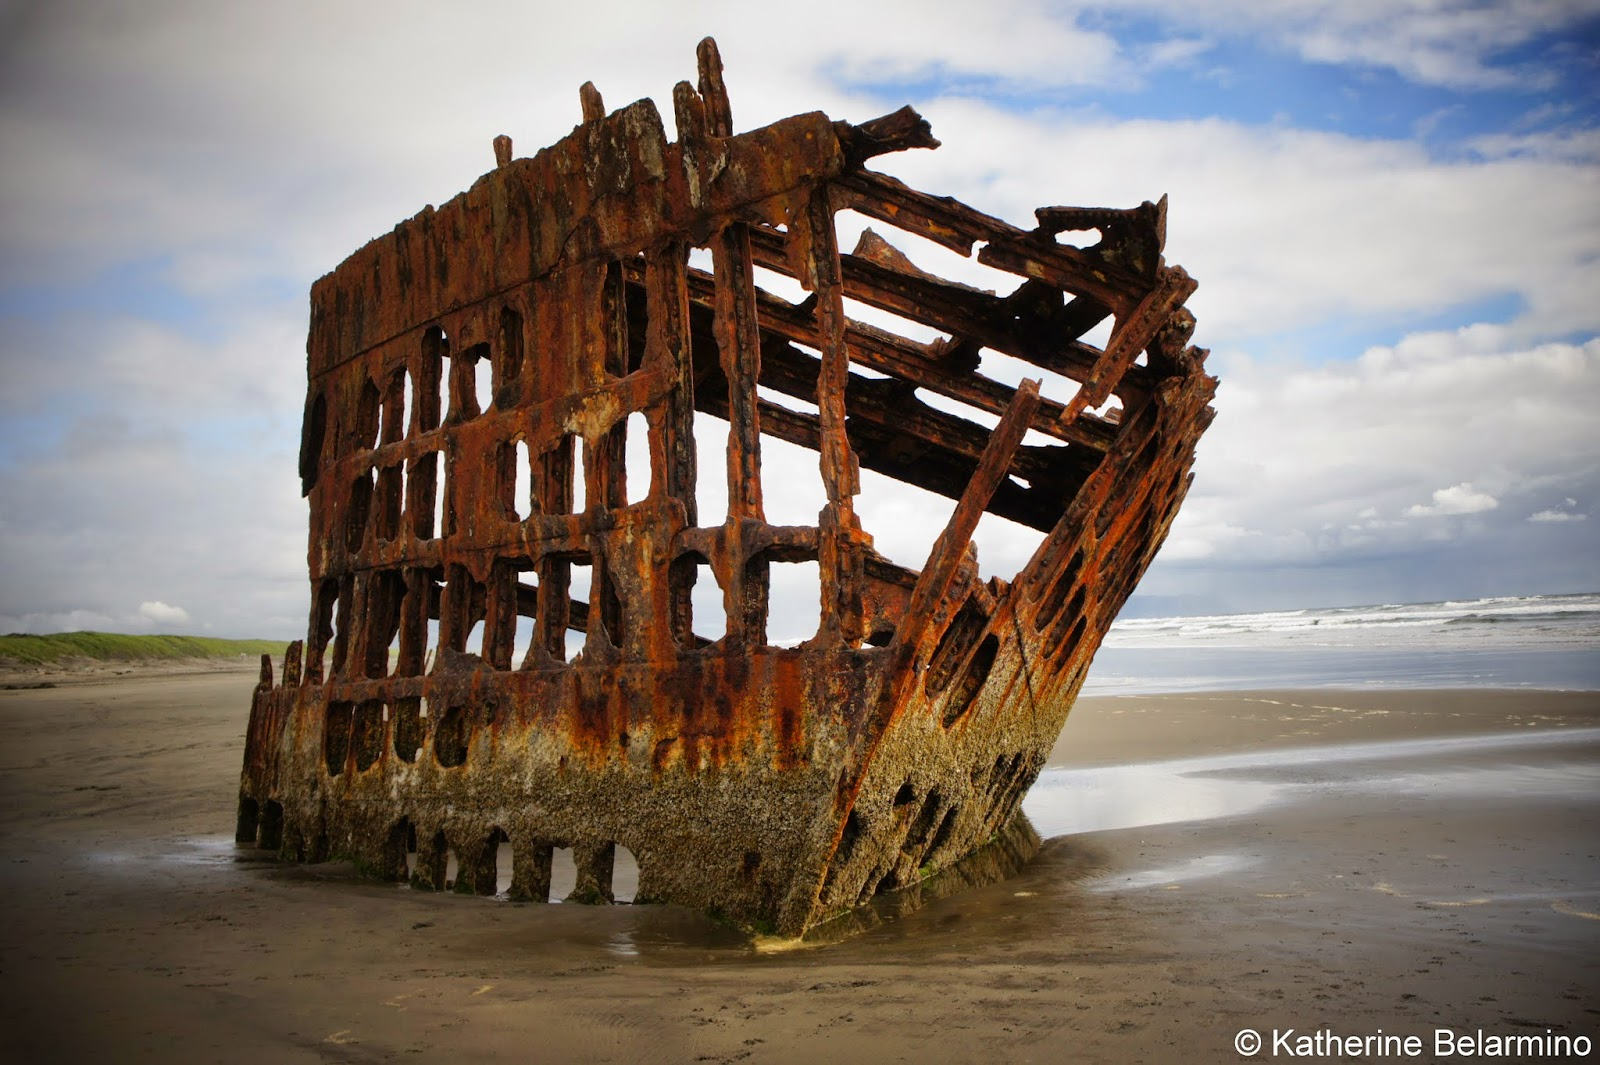 Peter Iredale Shipwreck Outside Astoria Oregon